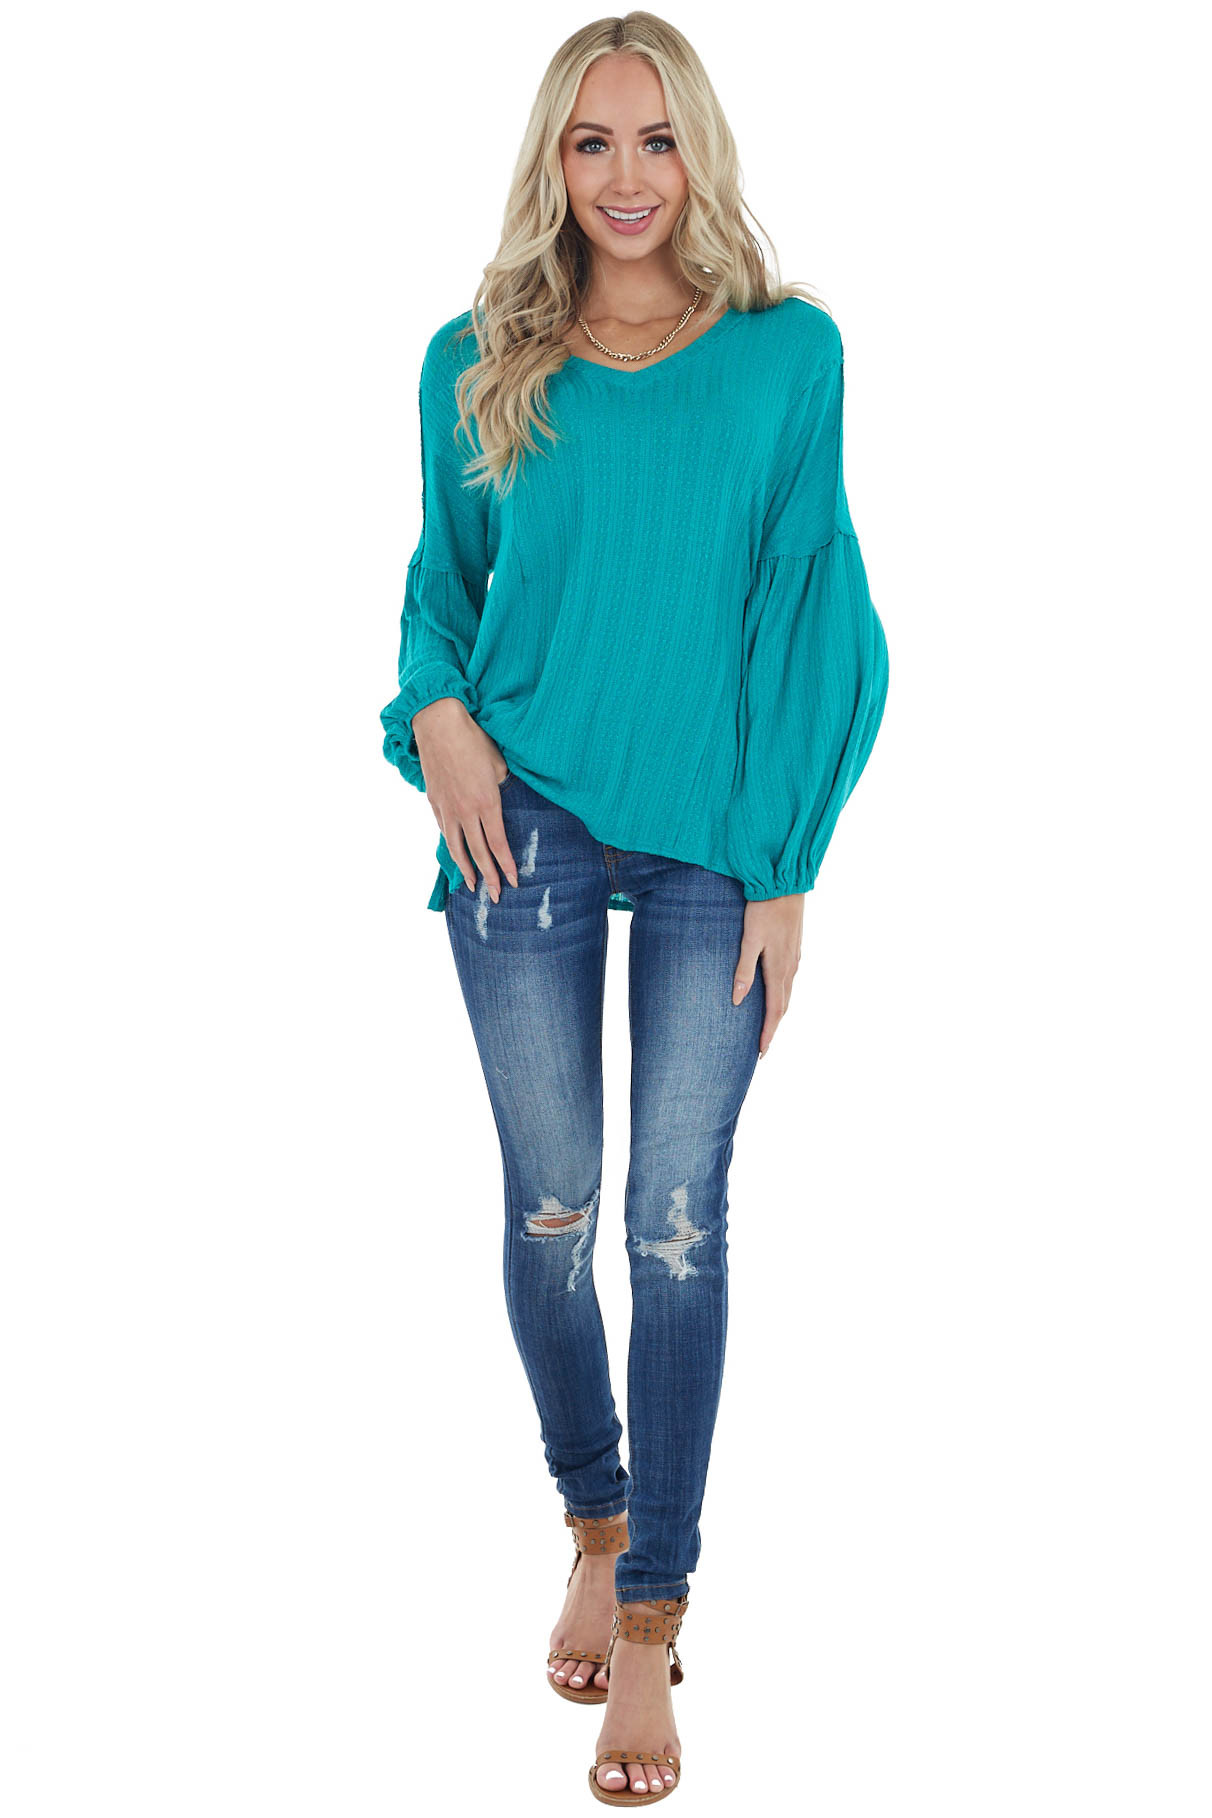 Teal Textured Long Bubble Sleeve Top with Raw Edge Details